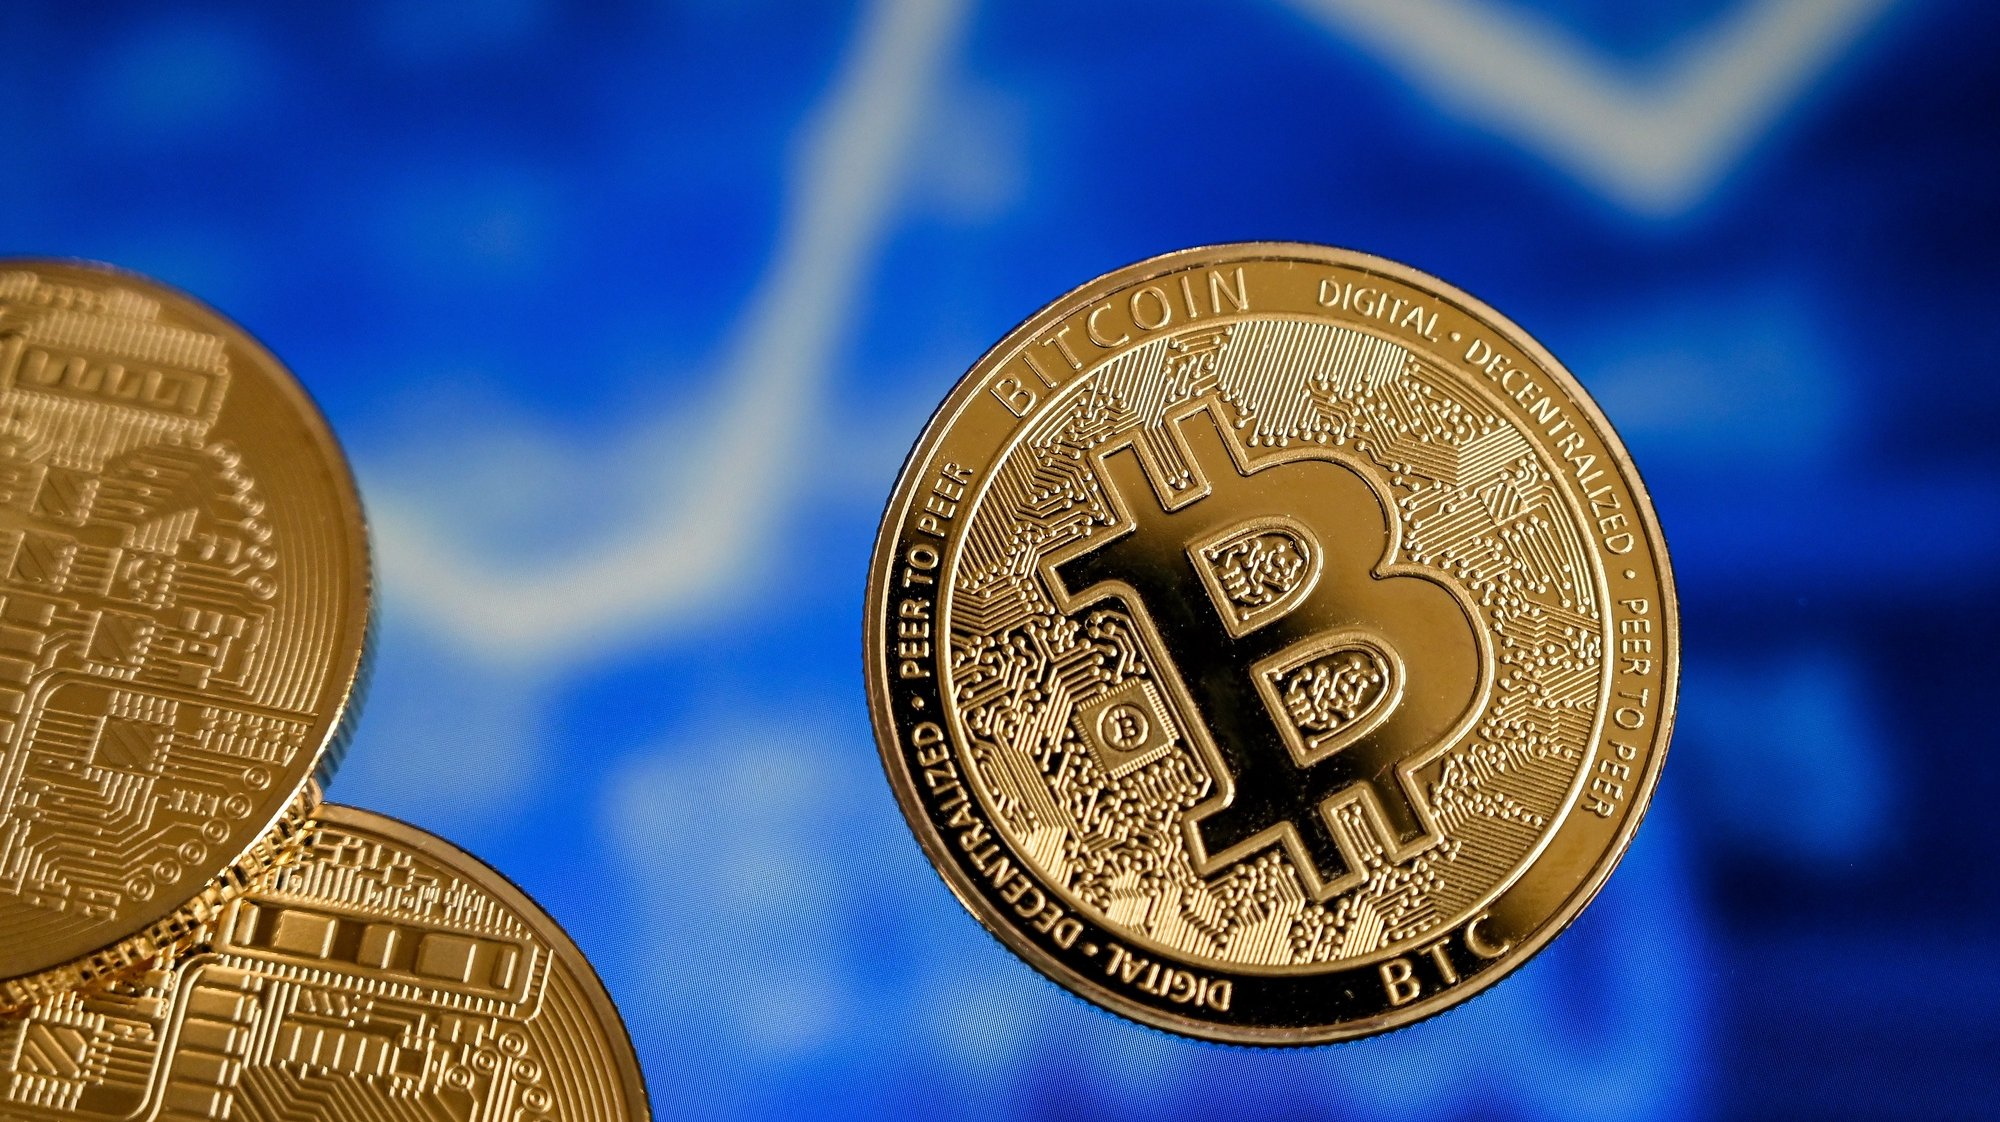 epa09018336 A bitcoin reflects in front of a monitor showing a stock barometer in Duesseldorf, Germany, 17 February 2021. For the first time, the cryptocurrency Bitcoin has exceeded the mark of 50,000 dollars. Most recently, it became known that Elon Musk, CEO of the US electric car manufacturer Tesla, is said to have invested 1.5 billion dollars in Bitcoin. In recent weeks, he had boosted Bitcoin as well as other Internet currencies with positive news via the short message service Twitter. Credit card provider MasterCard also announced that it would open its payment network to cryptocurrencies. Visa plans to help banks introduce trading with Bitcoin and other cryptocurrencies by launching software with API access.  EPA/SASCHA STEINBACH